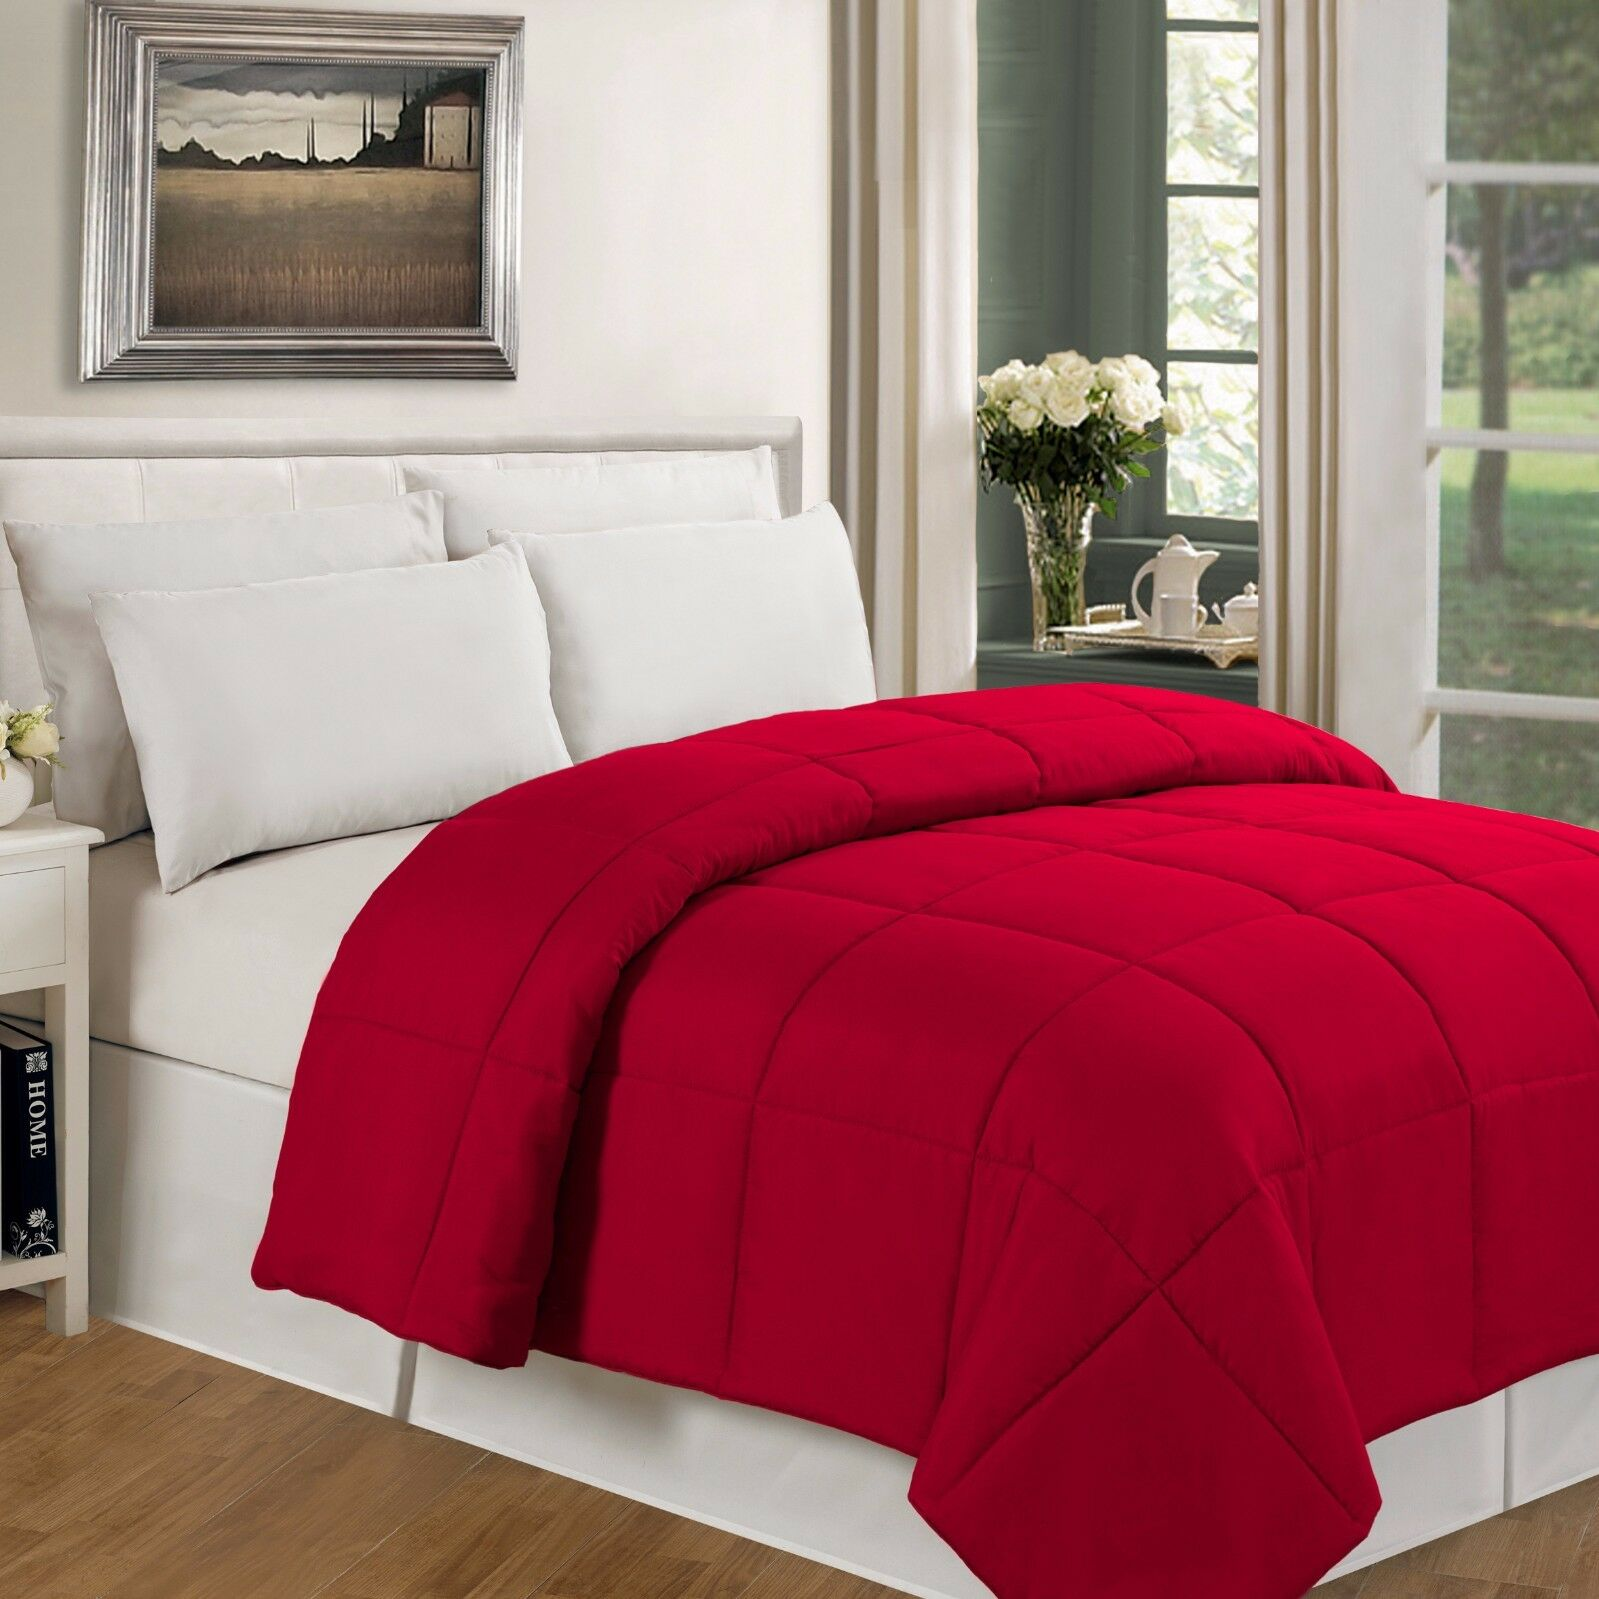 SUPER SOFT LUXURIOUS ALL SEASON WARM DOWN ALTERNATIVE BAFFLE COMFORTER rot NEW